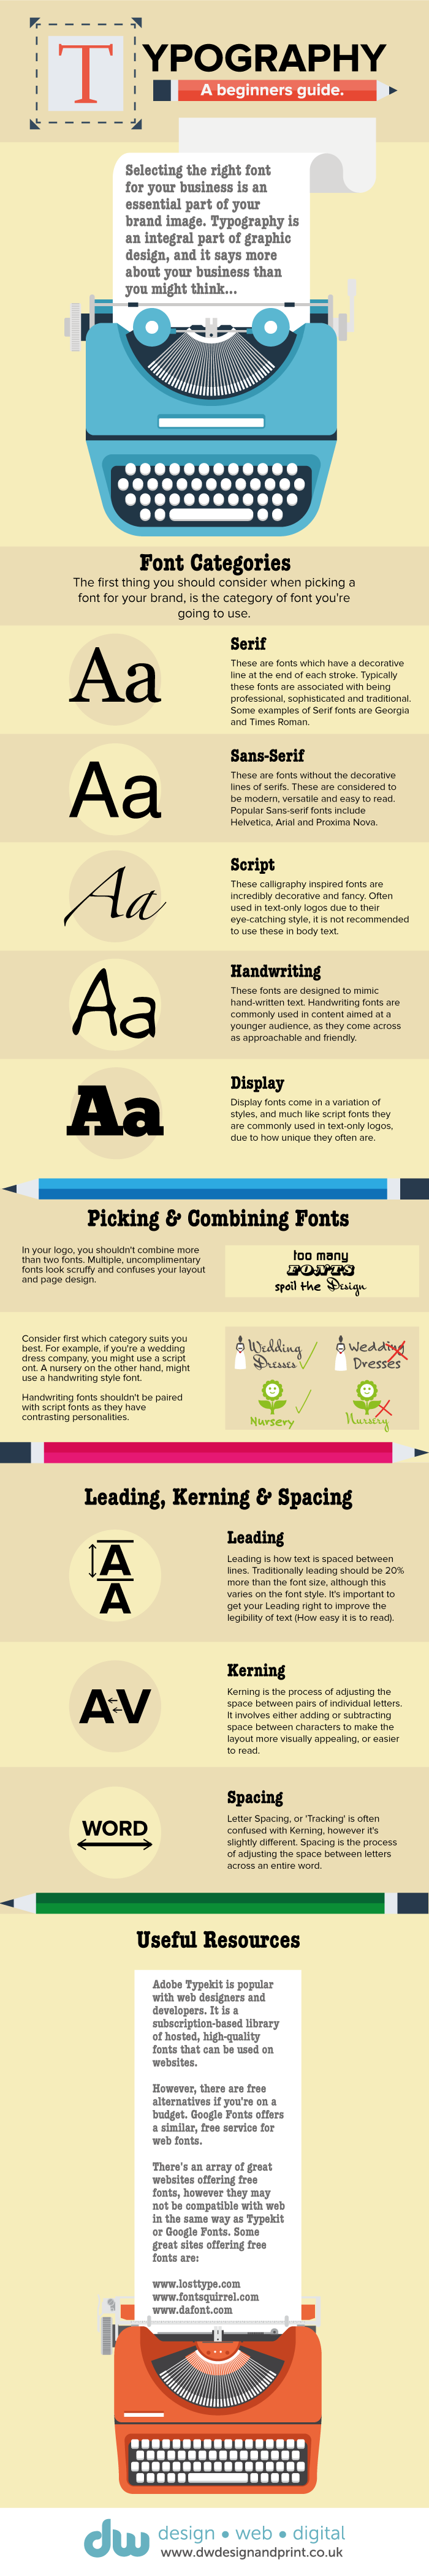 typography_infographic_final_for_web.png